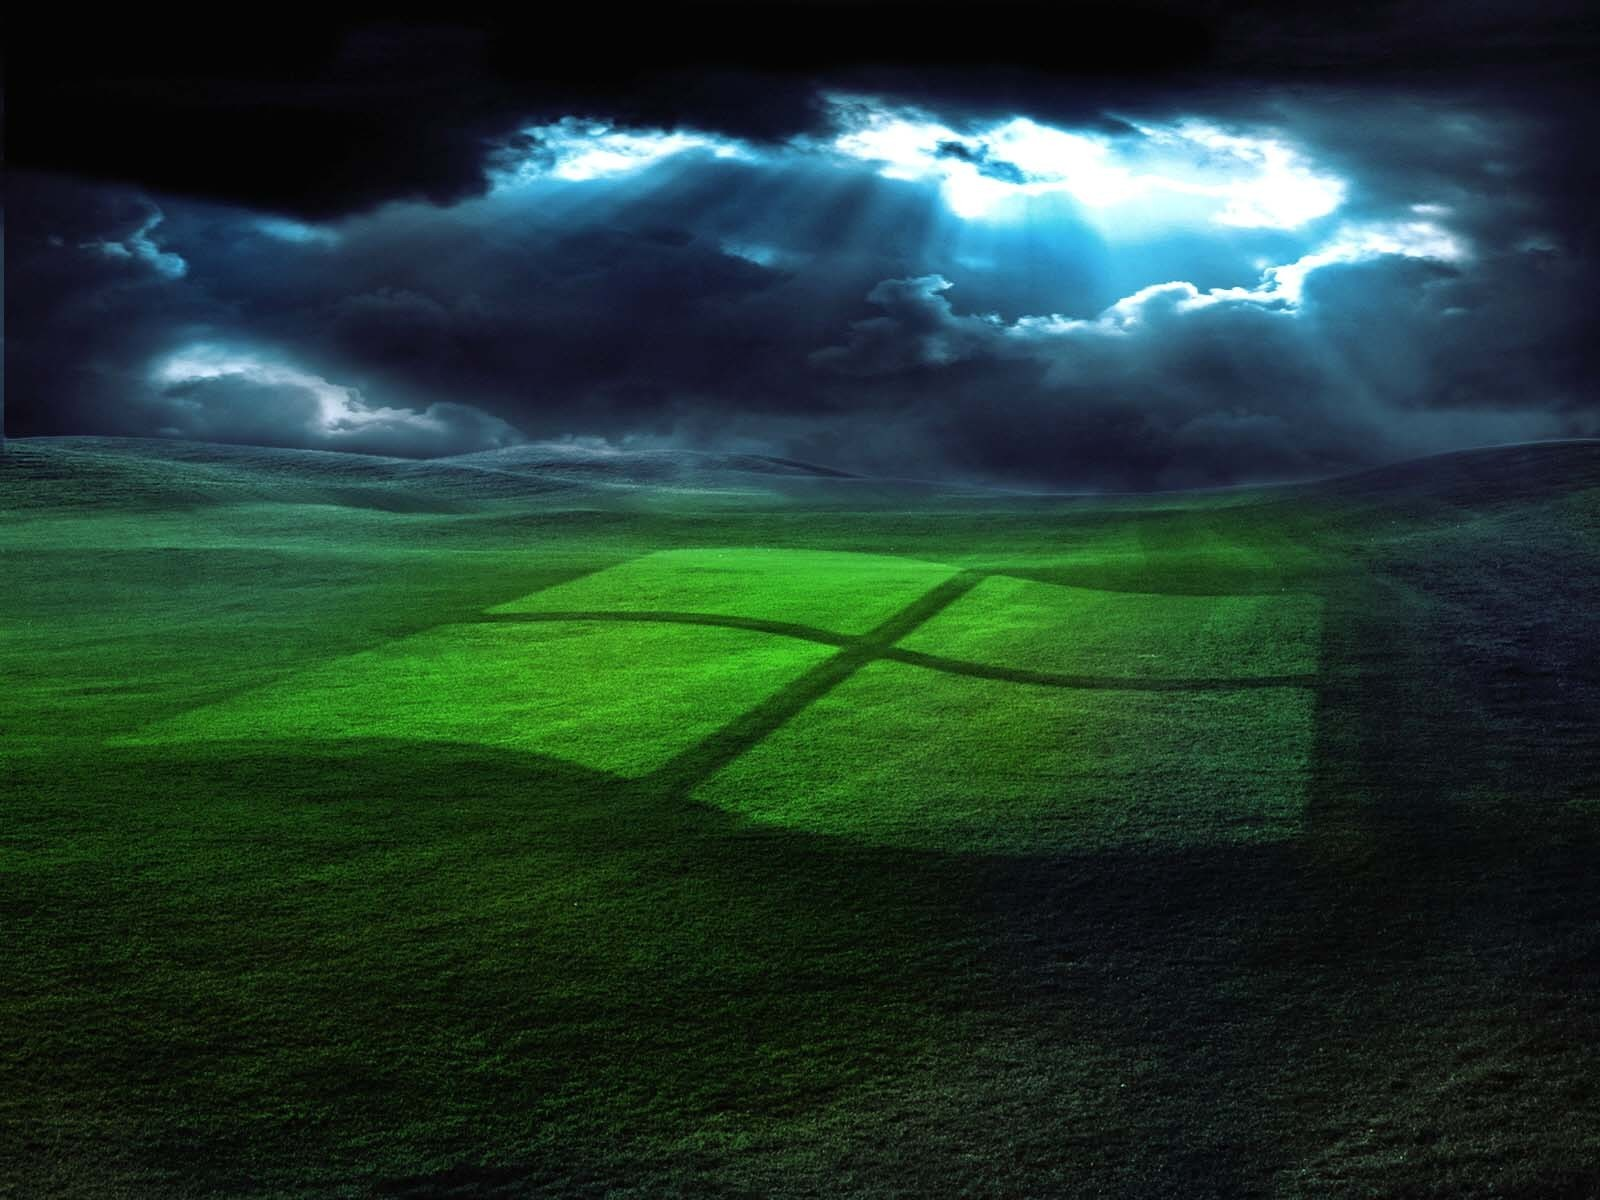 microsoft windows images icons wallpapers and photos on